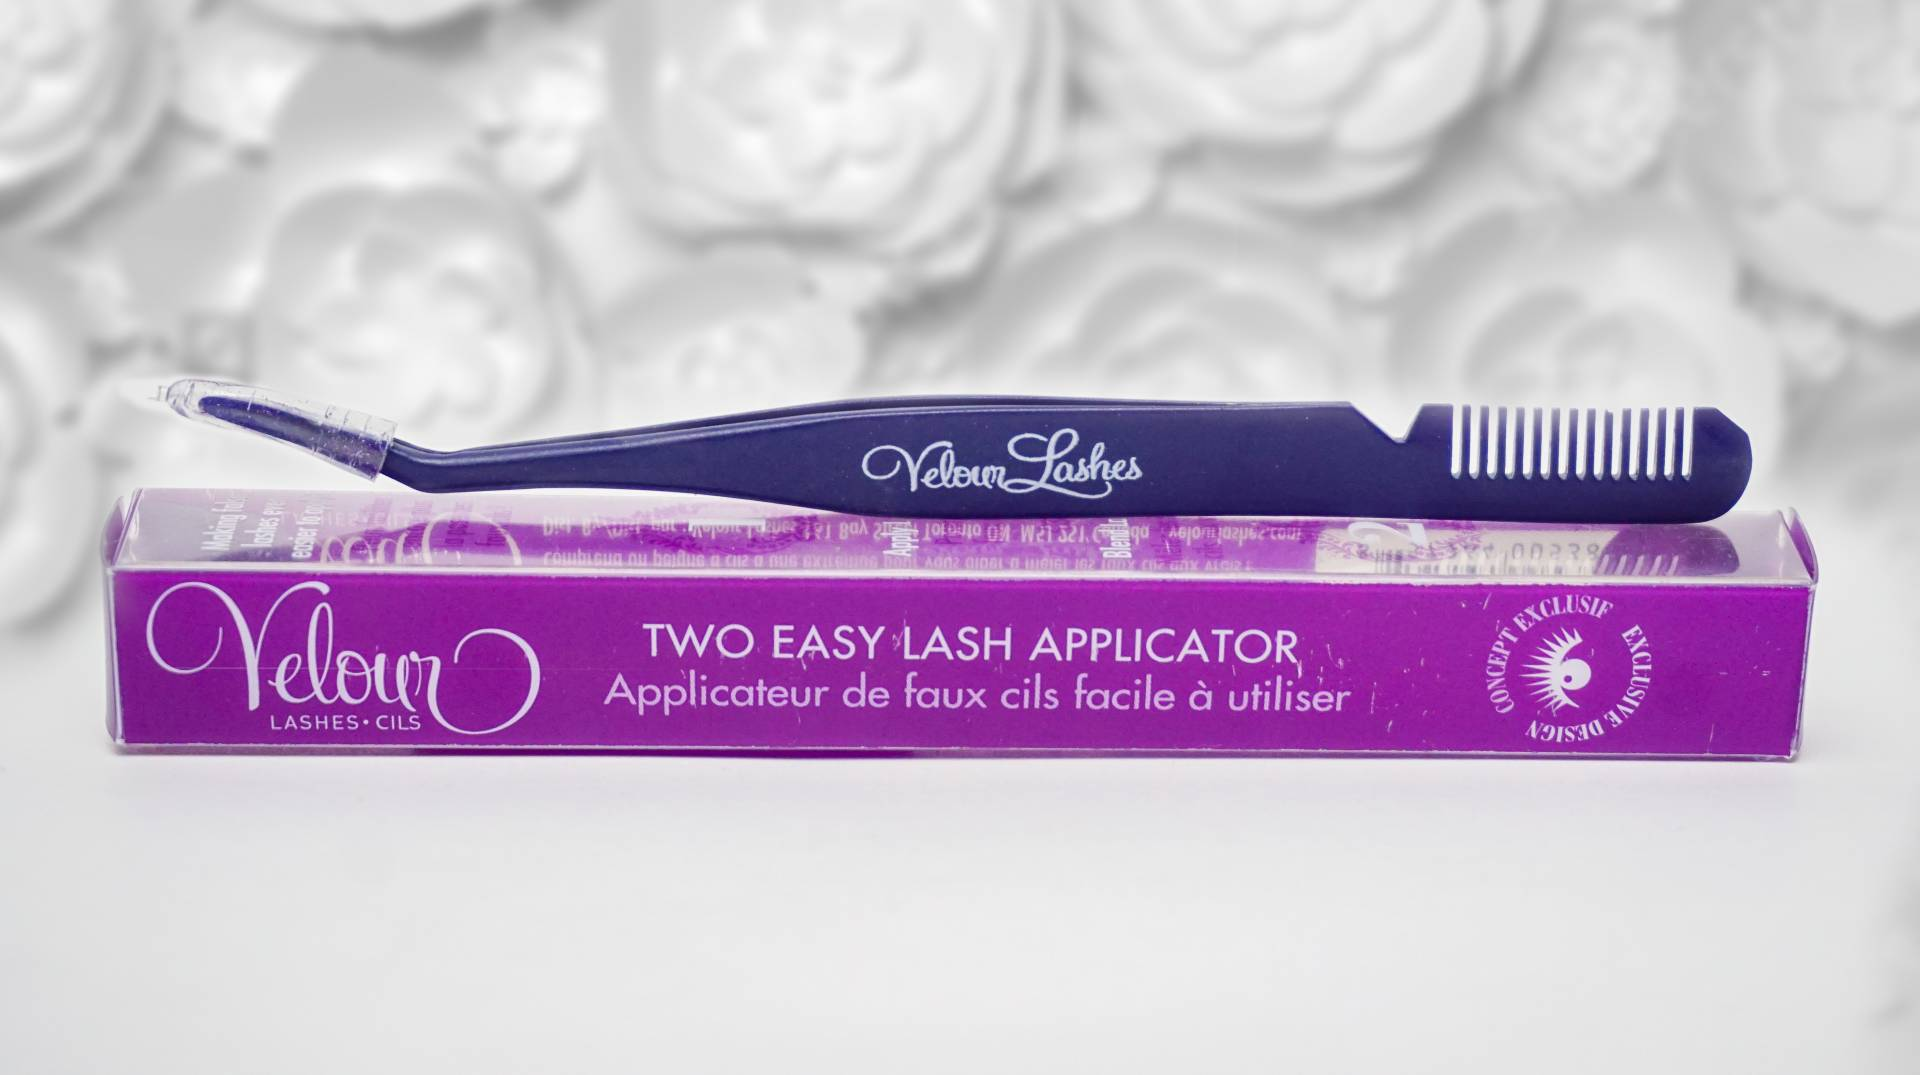 Velour Lashes Two Easy Lash Applicator TJ Maxx deal